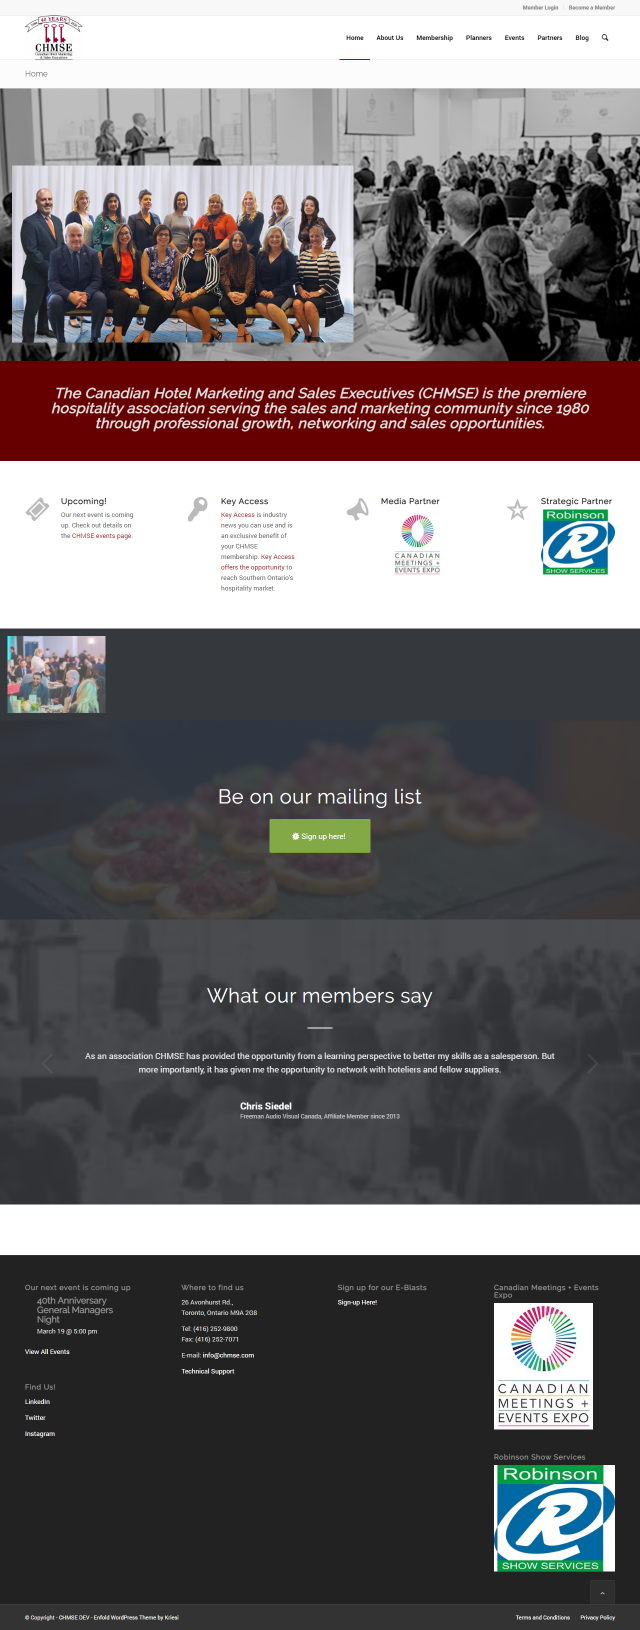 CHMSE Home Page